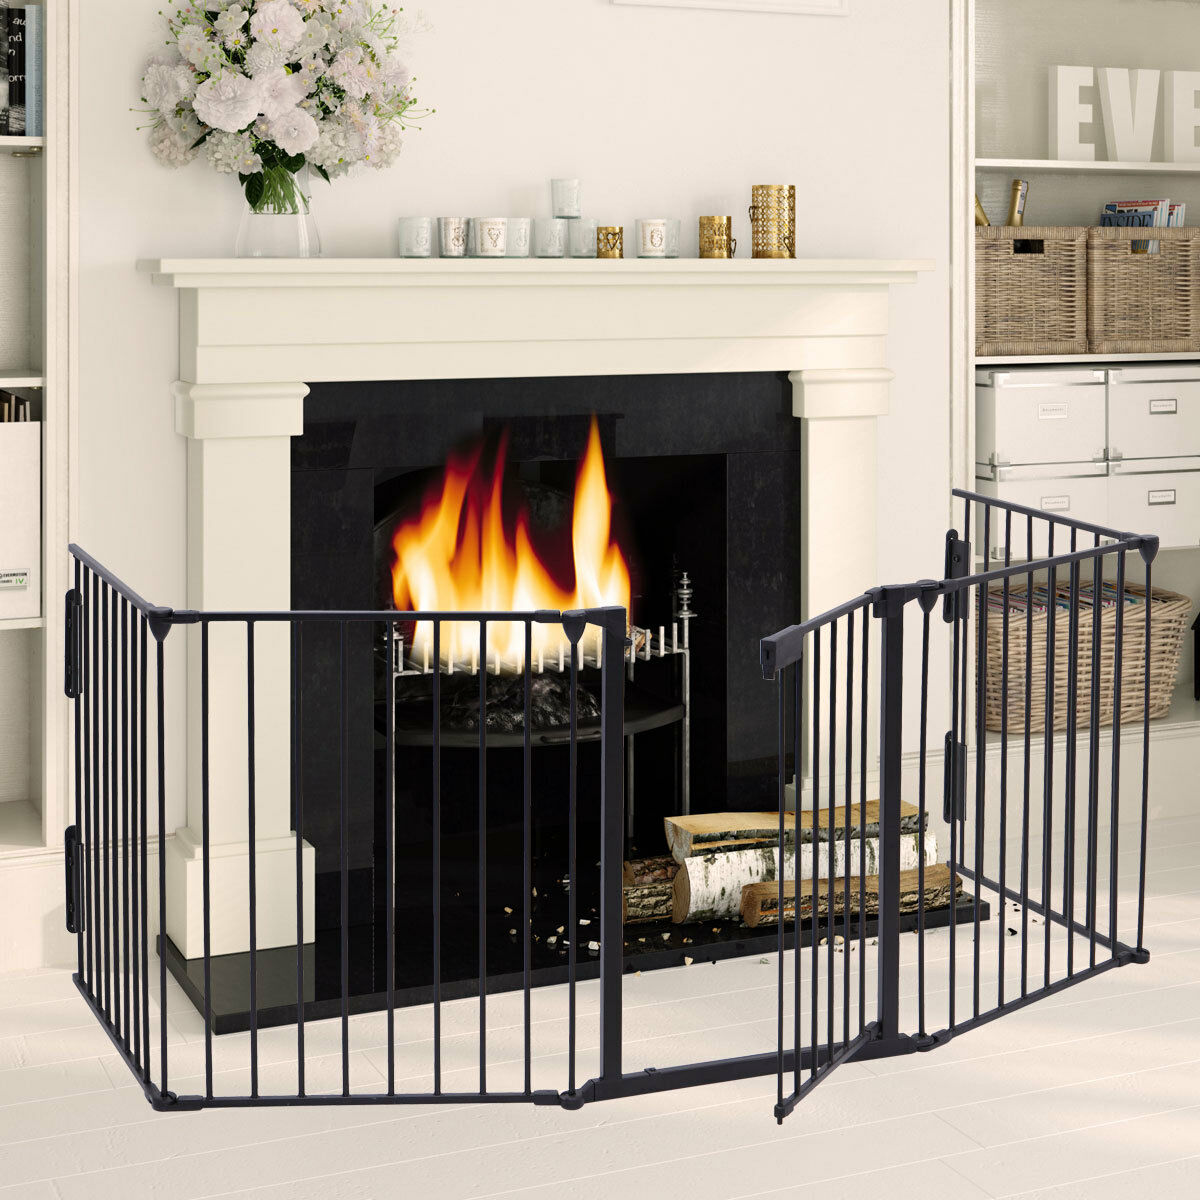 Fireplace Fence Baby Safety Fence Hearth Gate Pet Cat Dog BBQ Metal Fire Gate